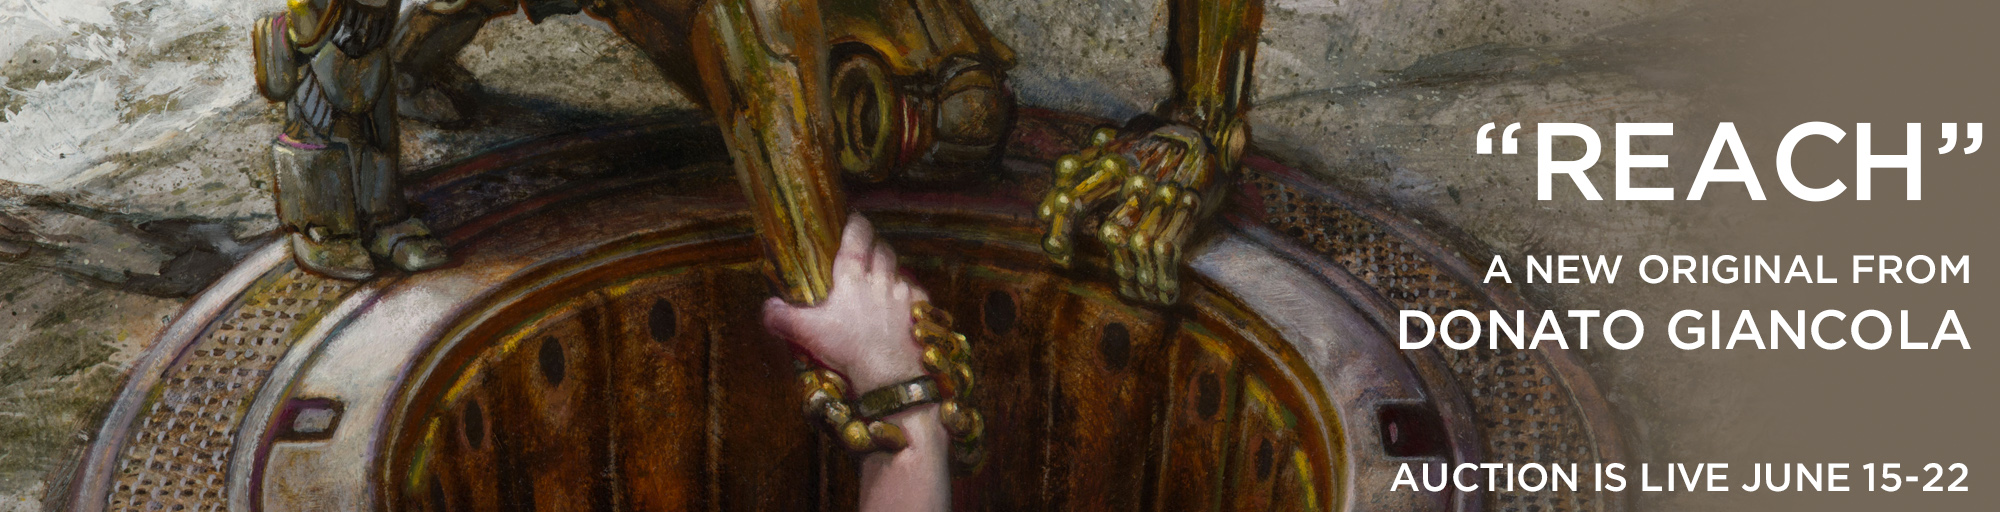 Reach, a new painting for auction by Donato Giancola